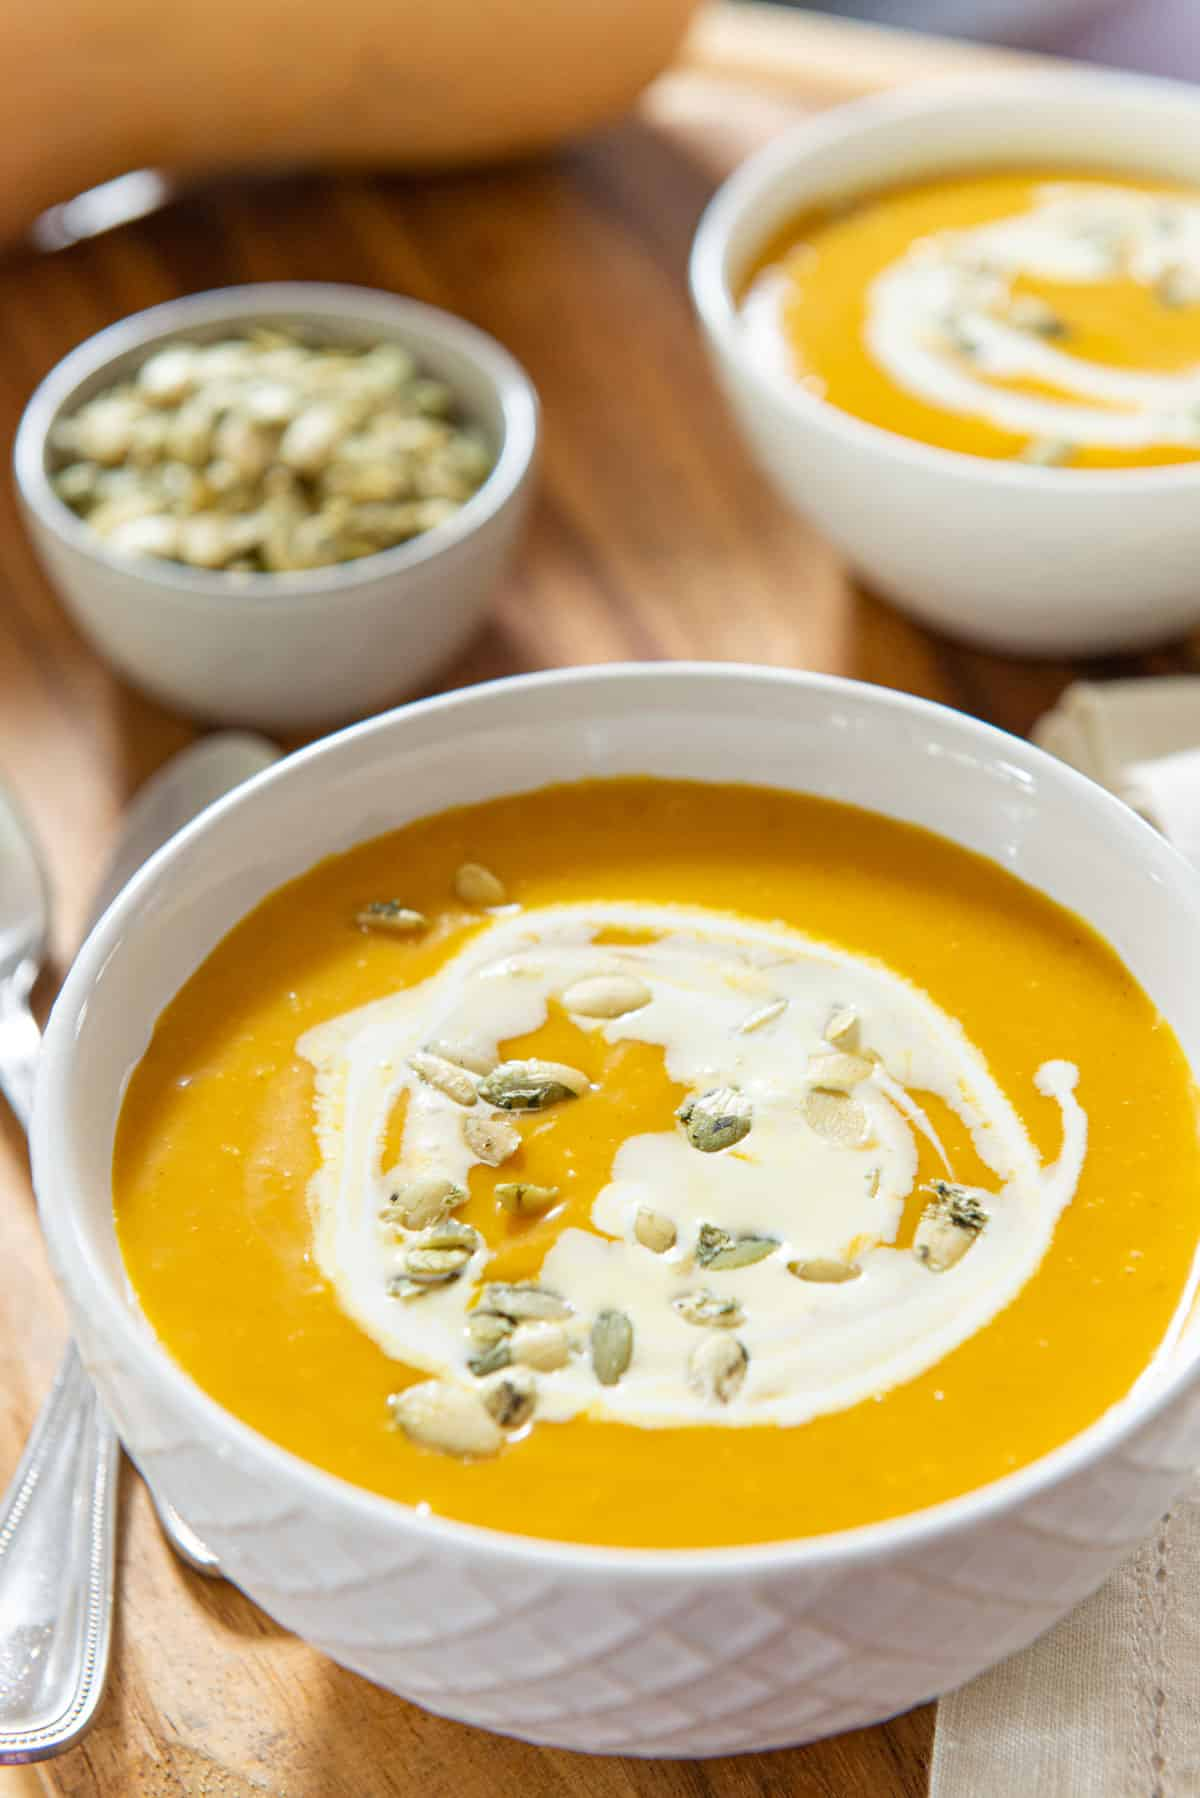 Butternut Squash Soup In White bowl with Cream and Pumpkin Seed Garnish